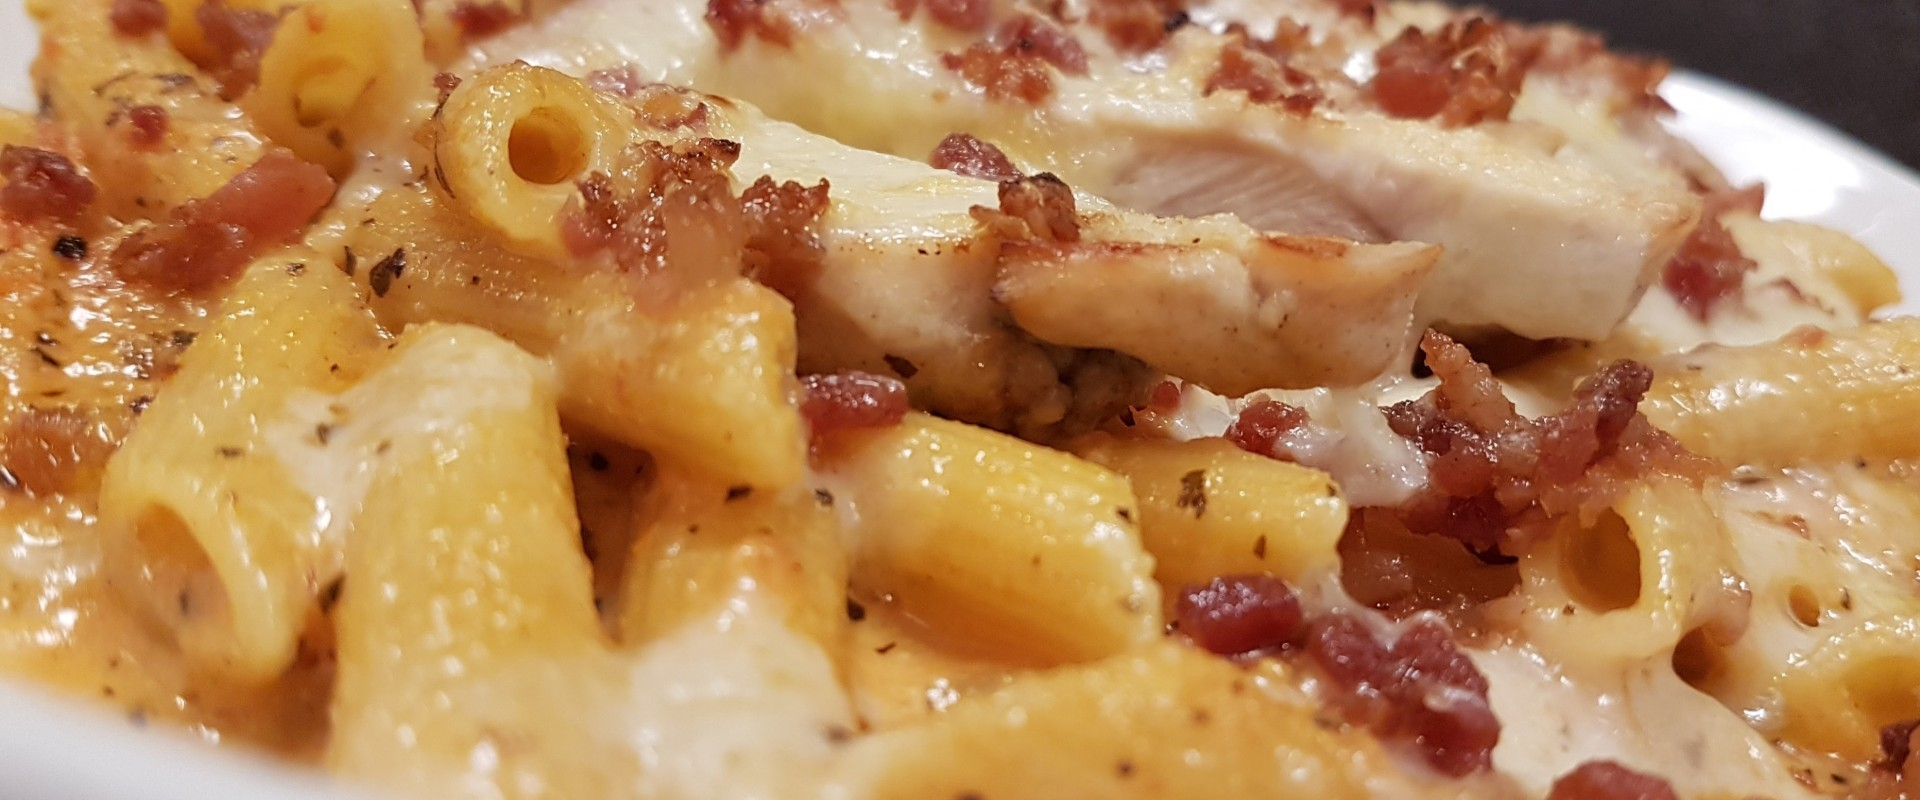 Menus Chicken Bacon Penne En